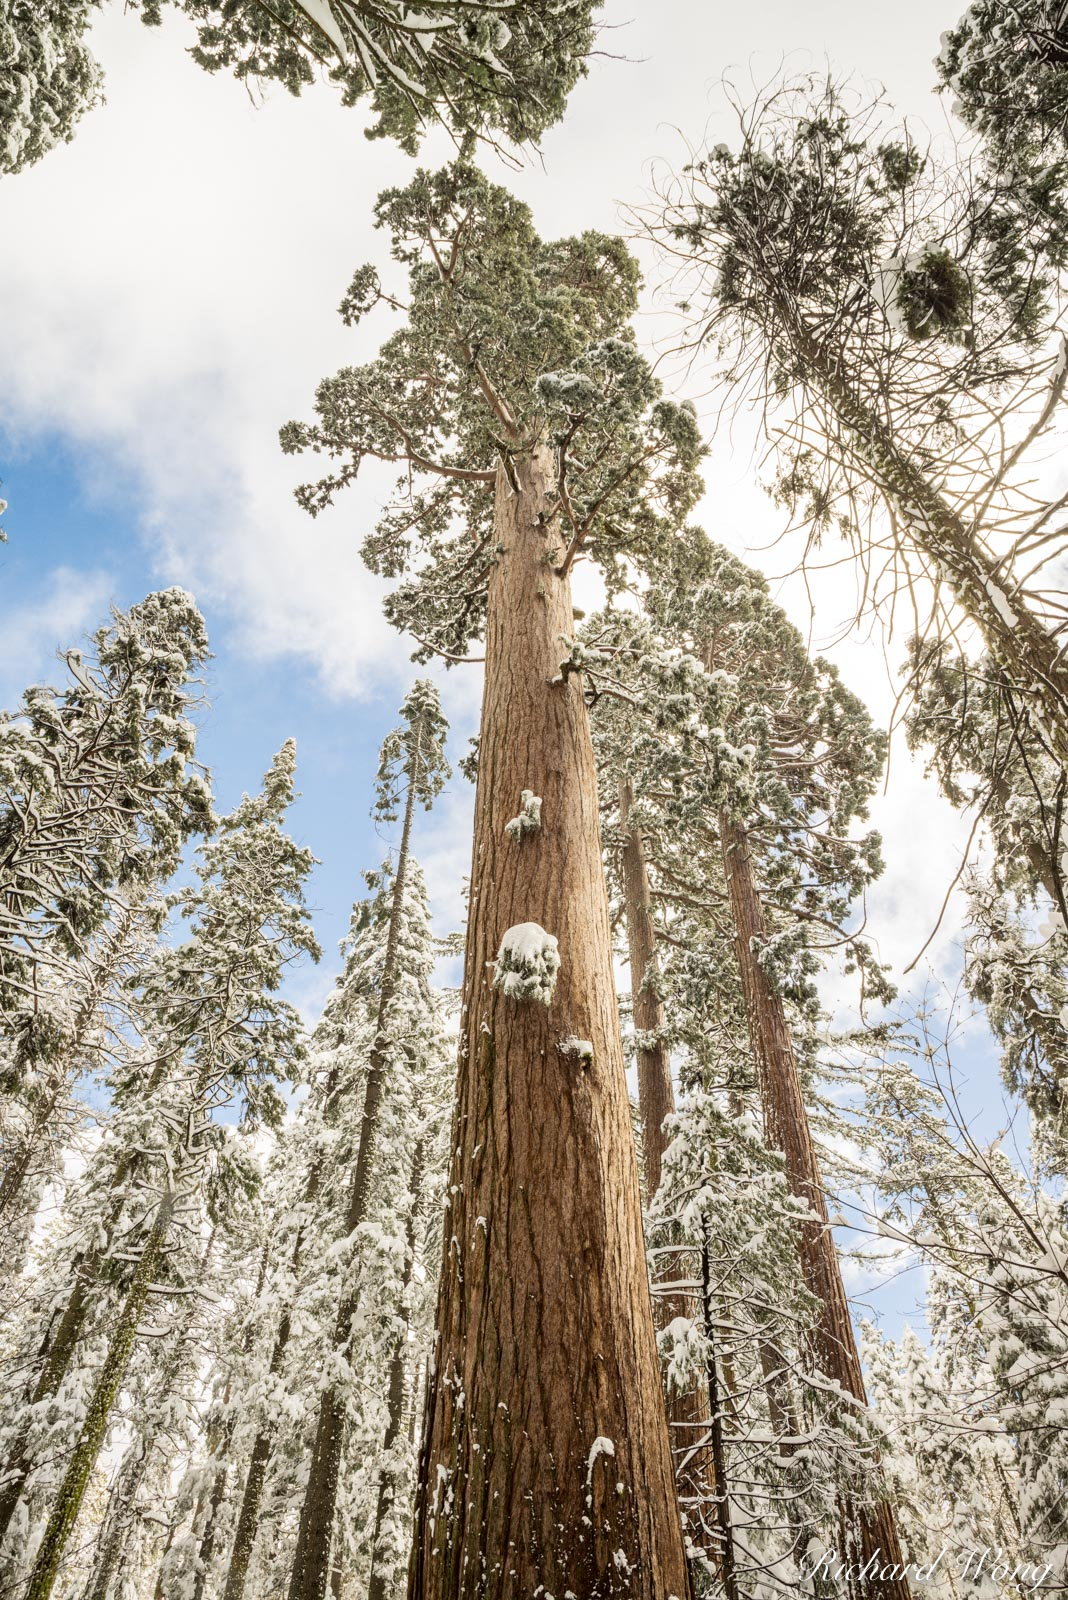 Giant Sequoia Trees After Winter Snowstorm, Calaveras Big Trees State Park, California, photo, photo